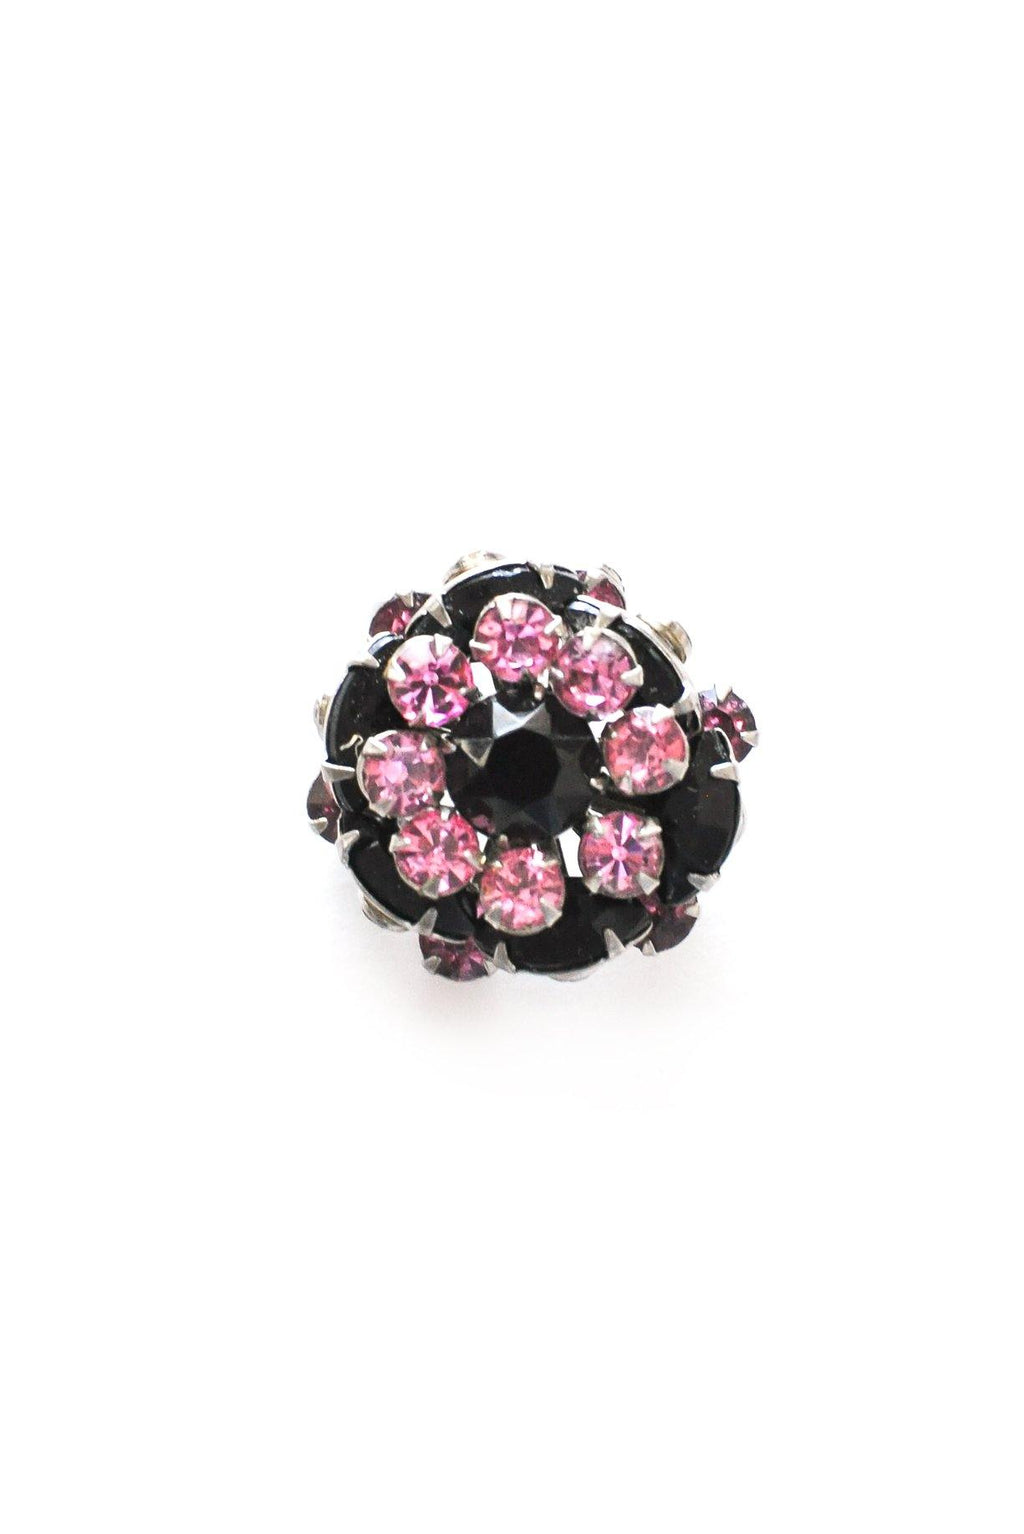 Mini Rhinestone Brooch